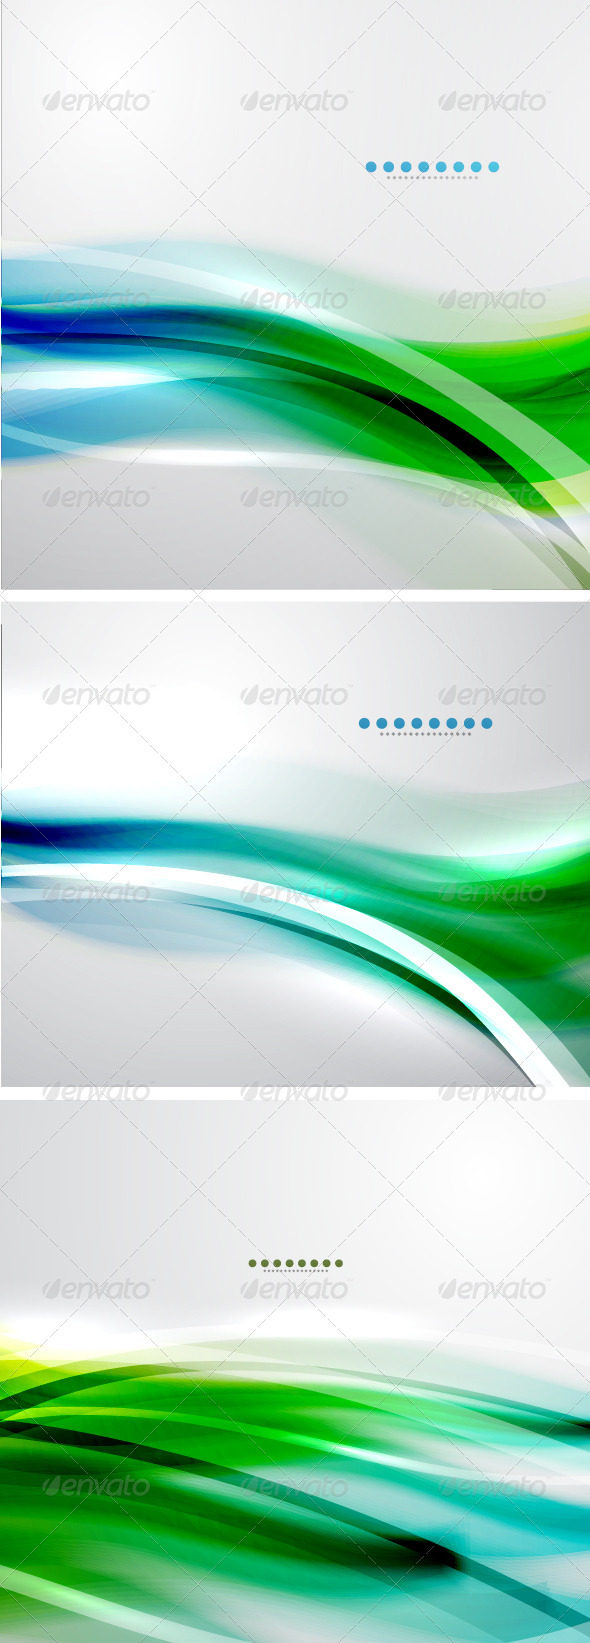 GraphicRiver Creative Smooth Wave Backgrounds 3780162